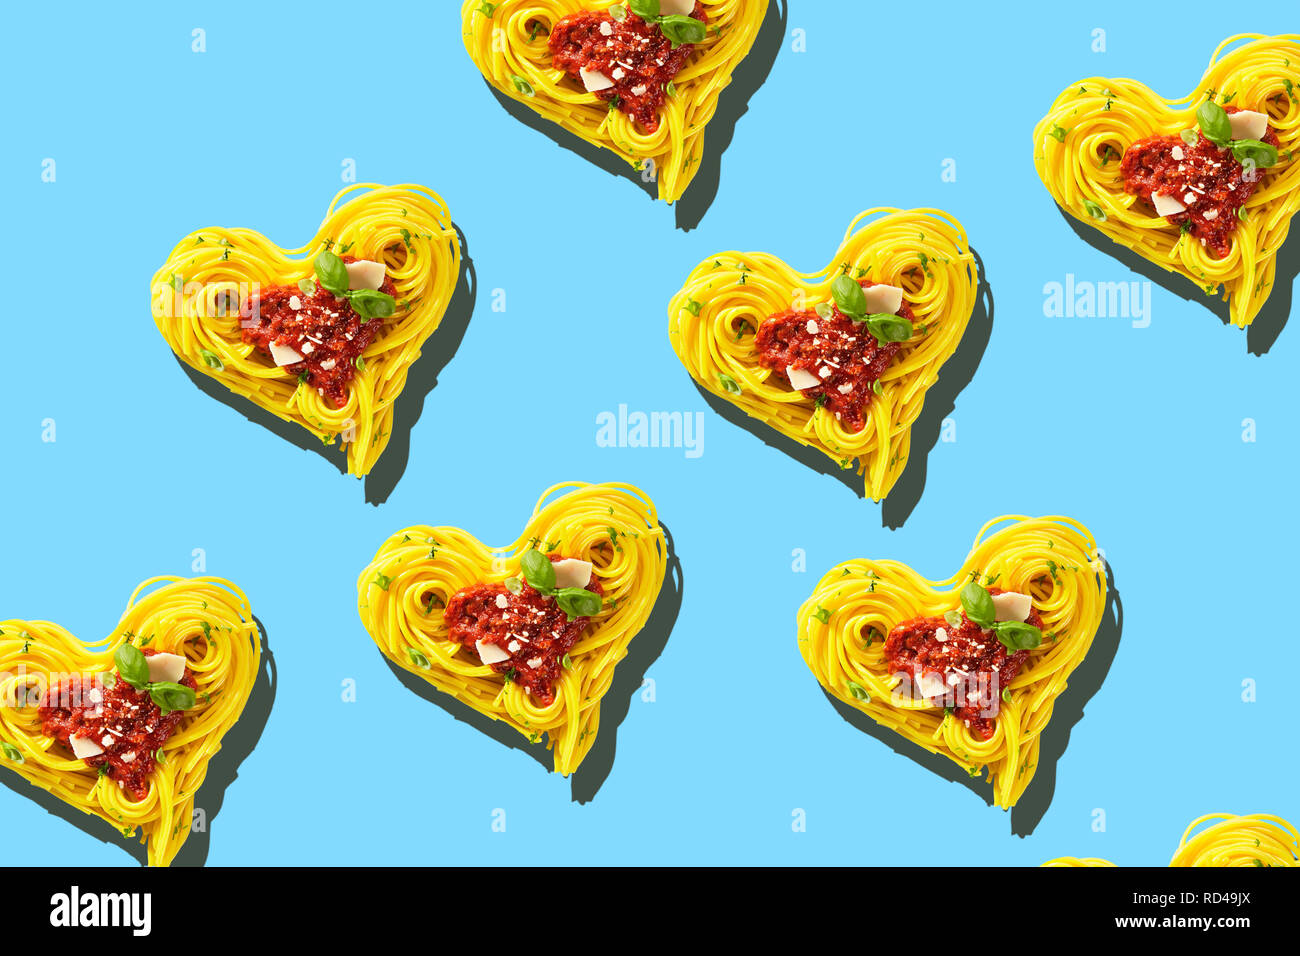 Decorative hearts of pasta of cooked yellow spaghetti with tomatoes, basil and parmesan cheese toping, viewed from above in full frame on light blue b - Stock Image